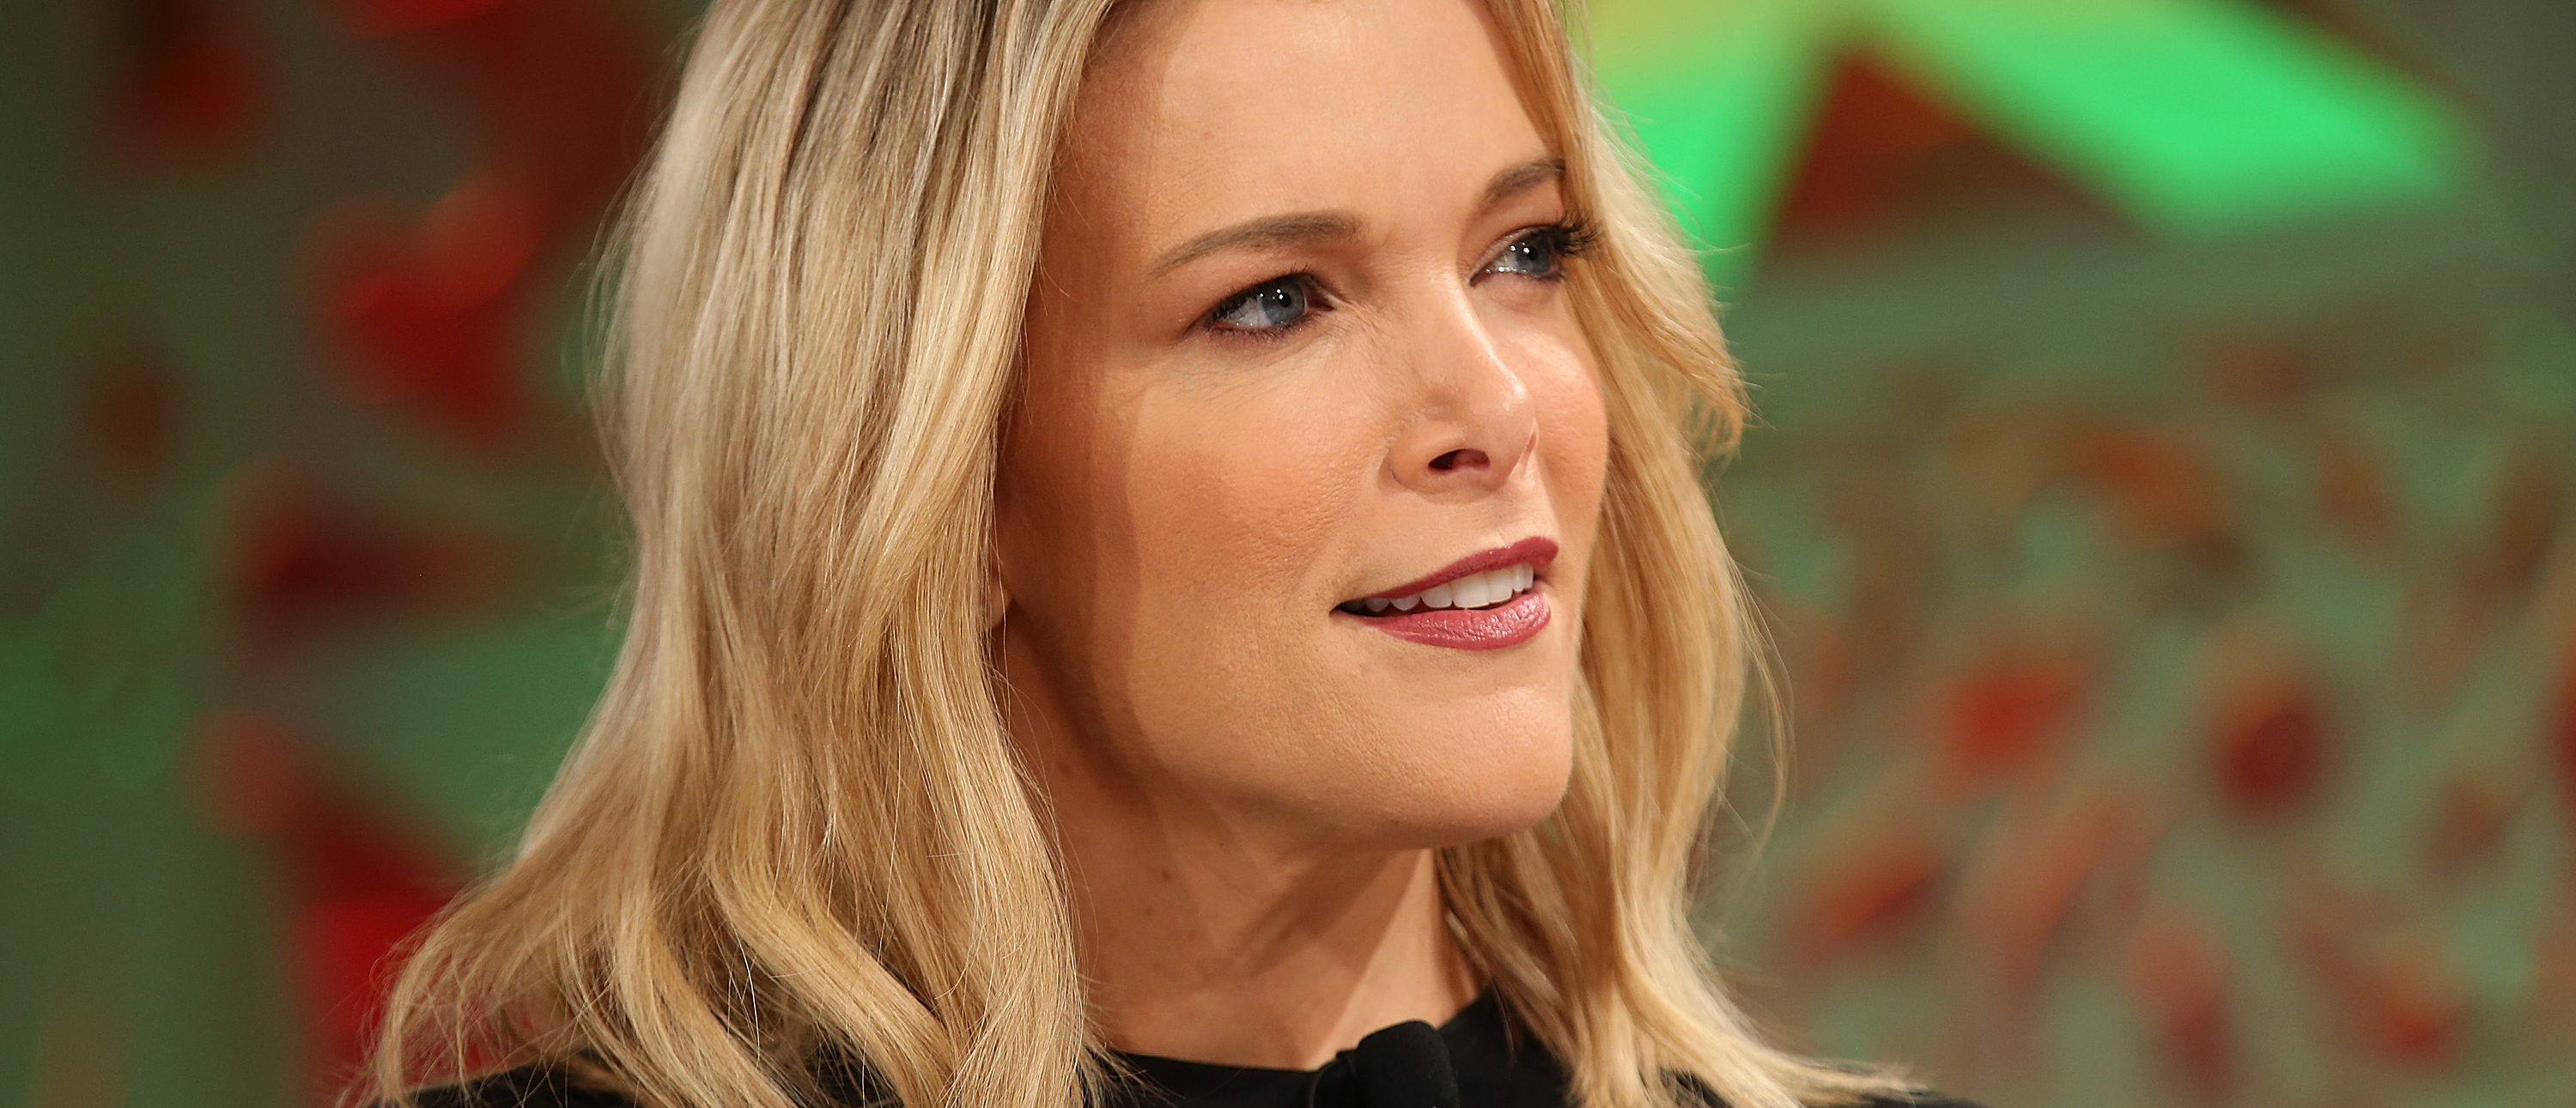 OPINION: Why The Media Mob Turned On Megyn Kelly